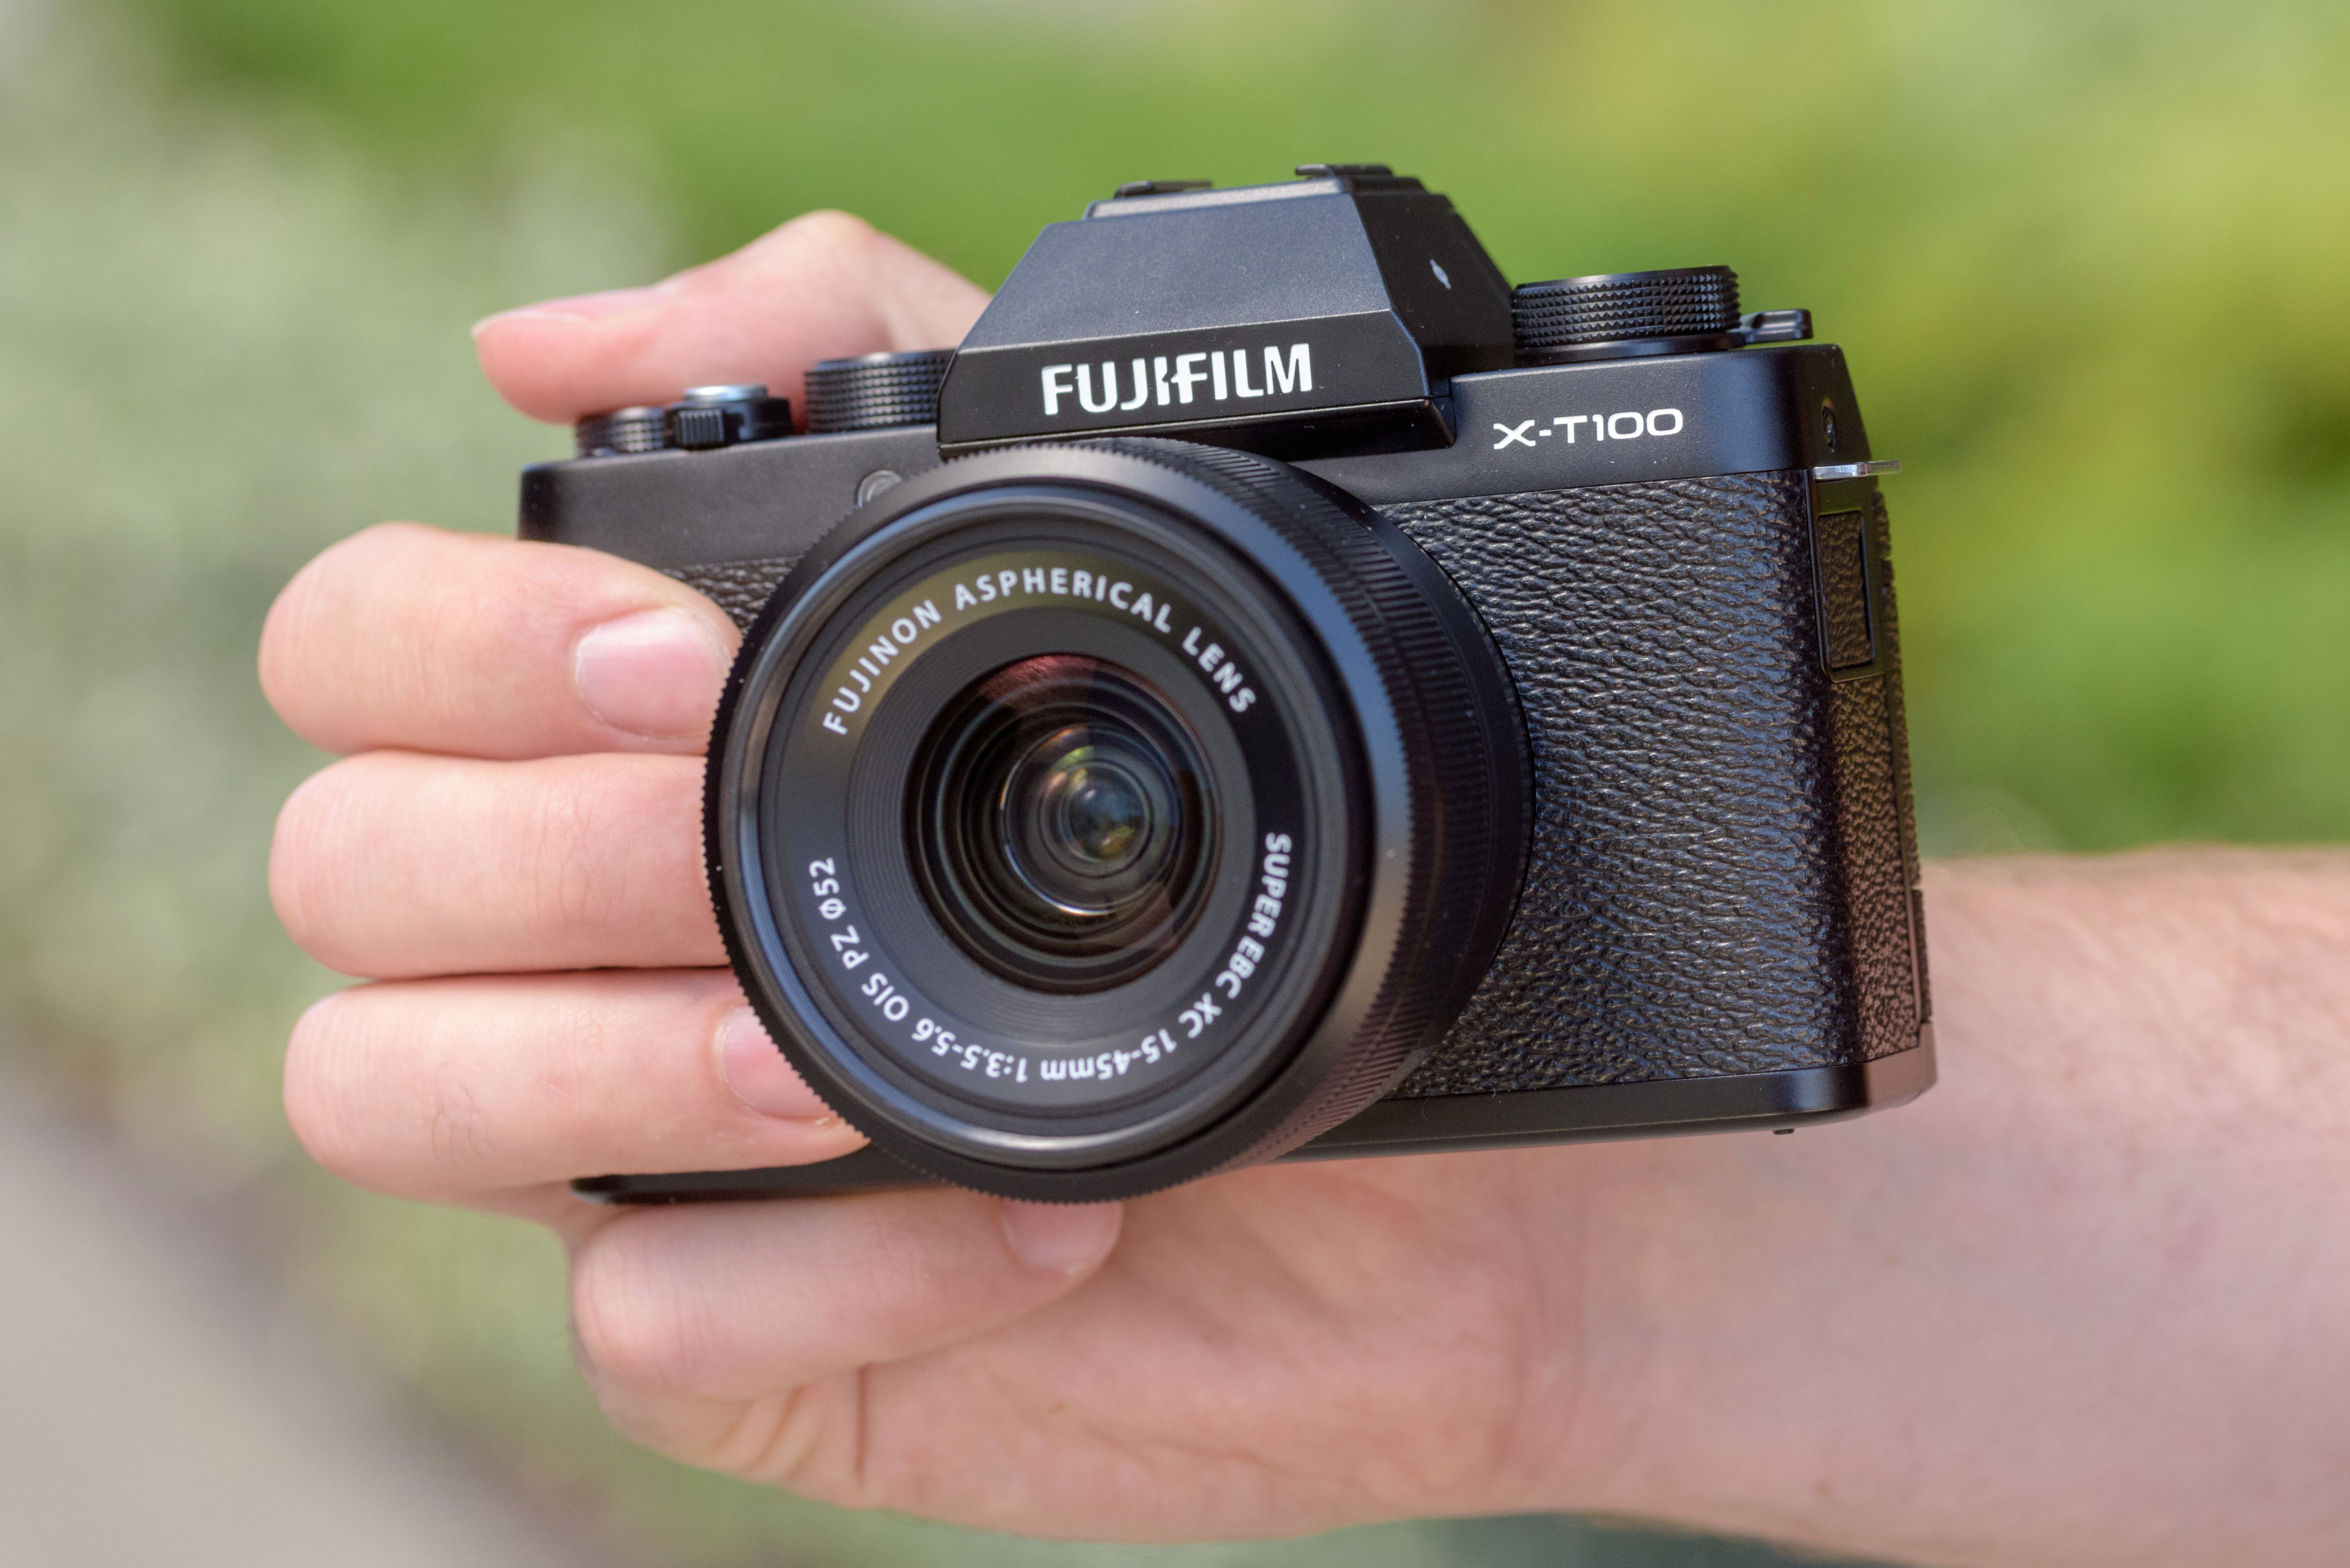 Fujifilm X-T100 review – The entry-level X-T model